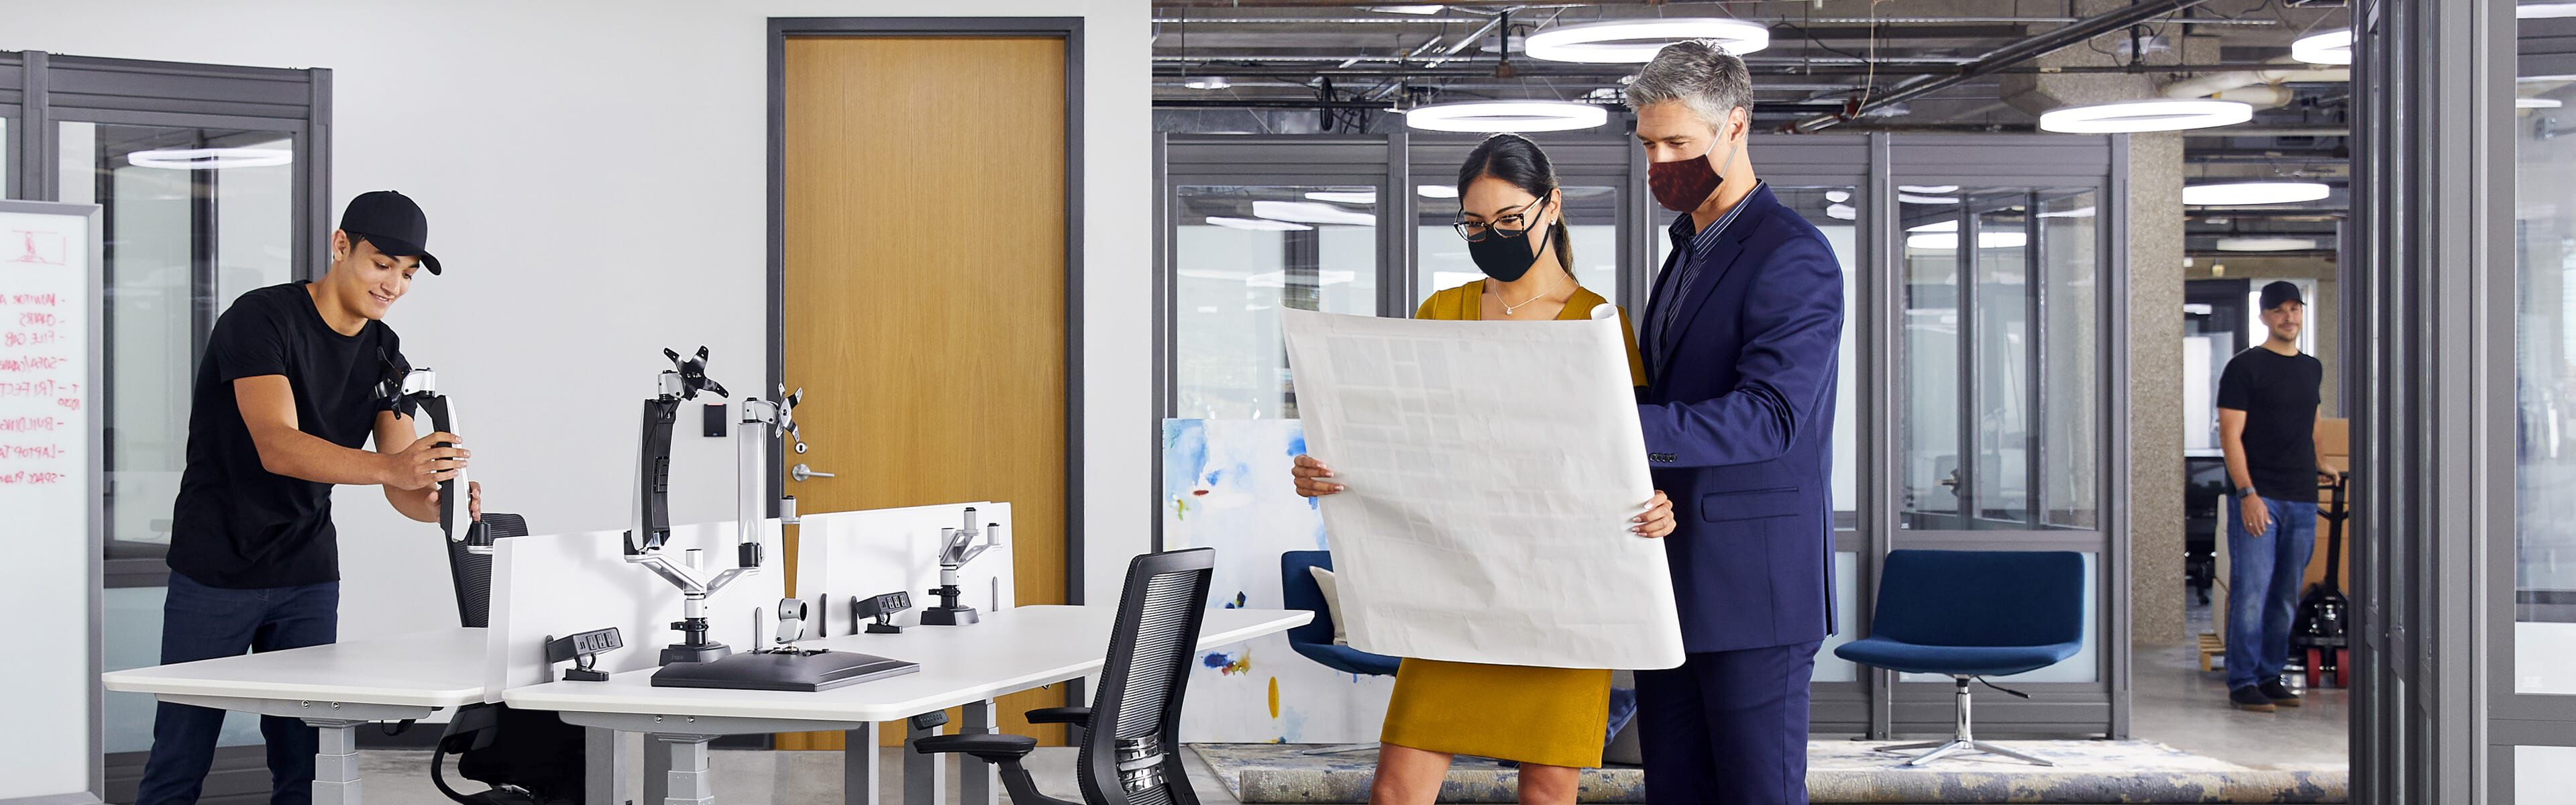 people reviewing a space plan in an office undergoing a furniture design project